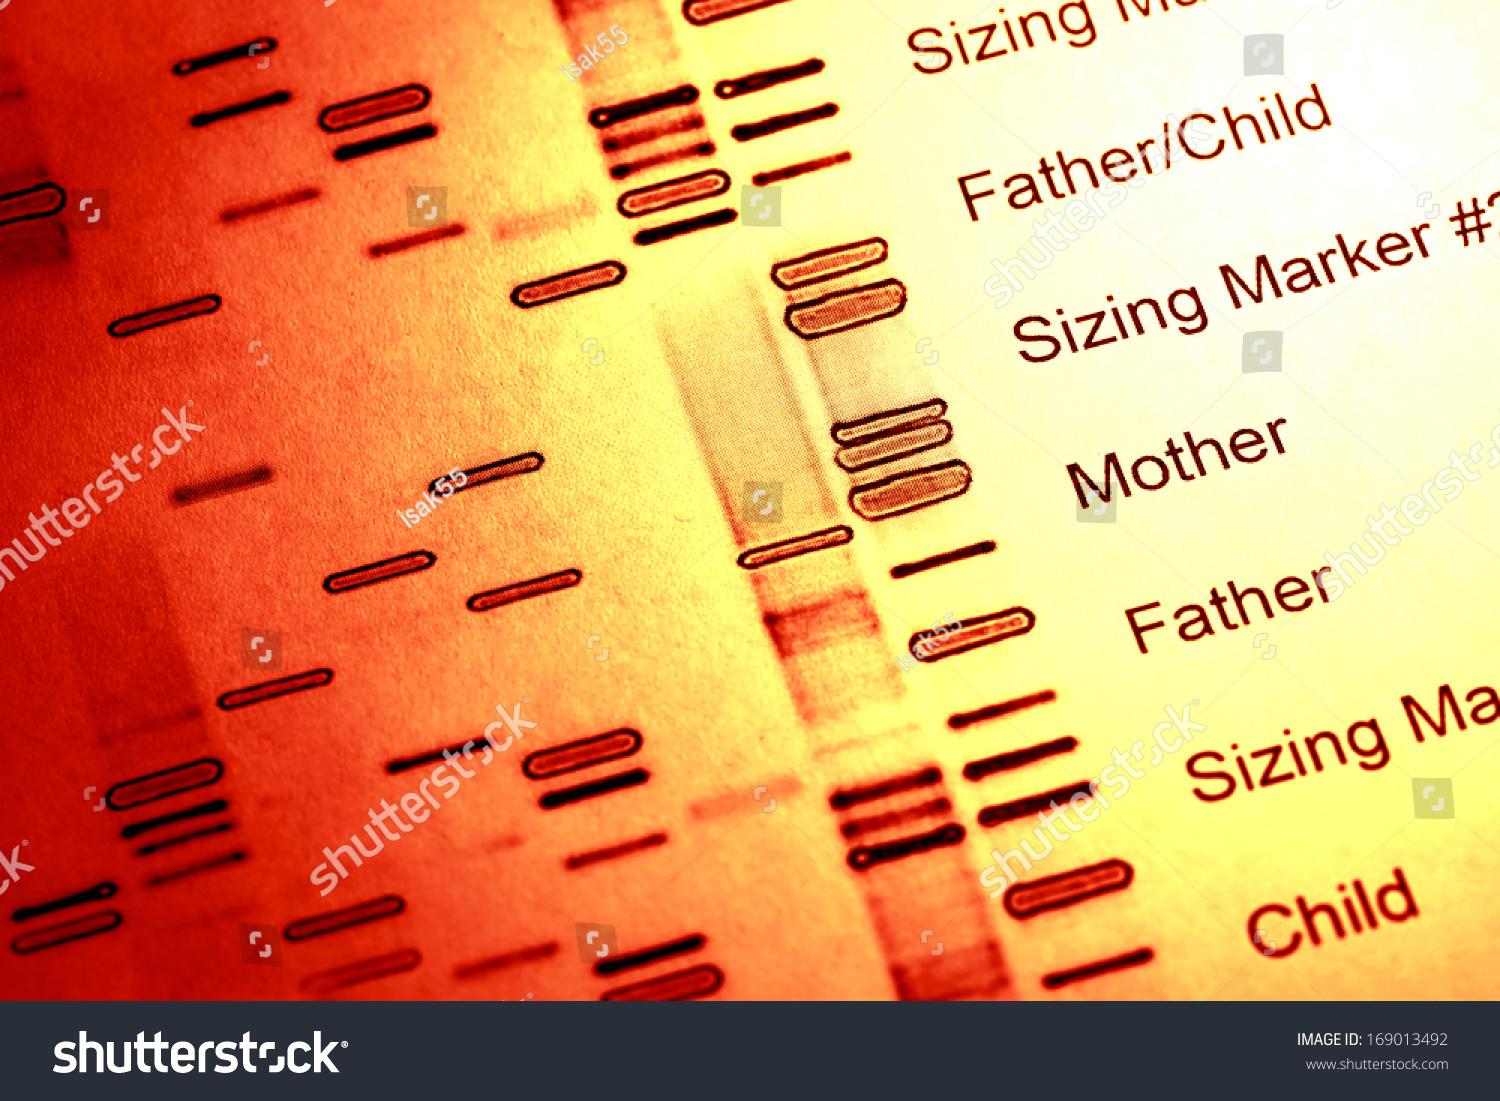 serious problems with dna fingerprinting essay The term dna fingerprinting - or genetic fingerprinting - is applied to the scientific process whereby samples of dna are collected, collated and used to match other.